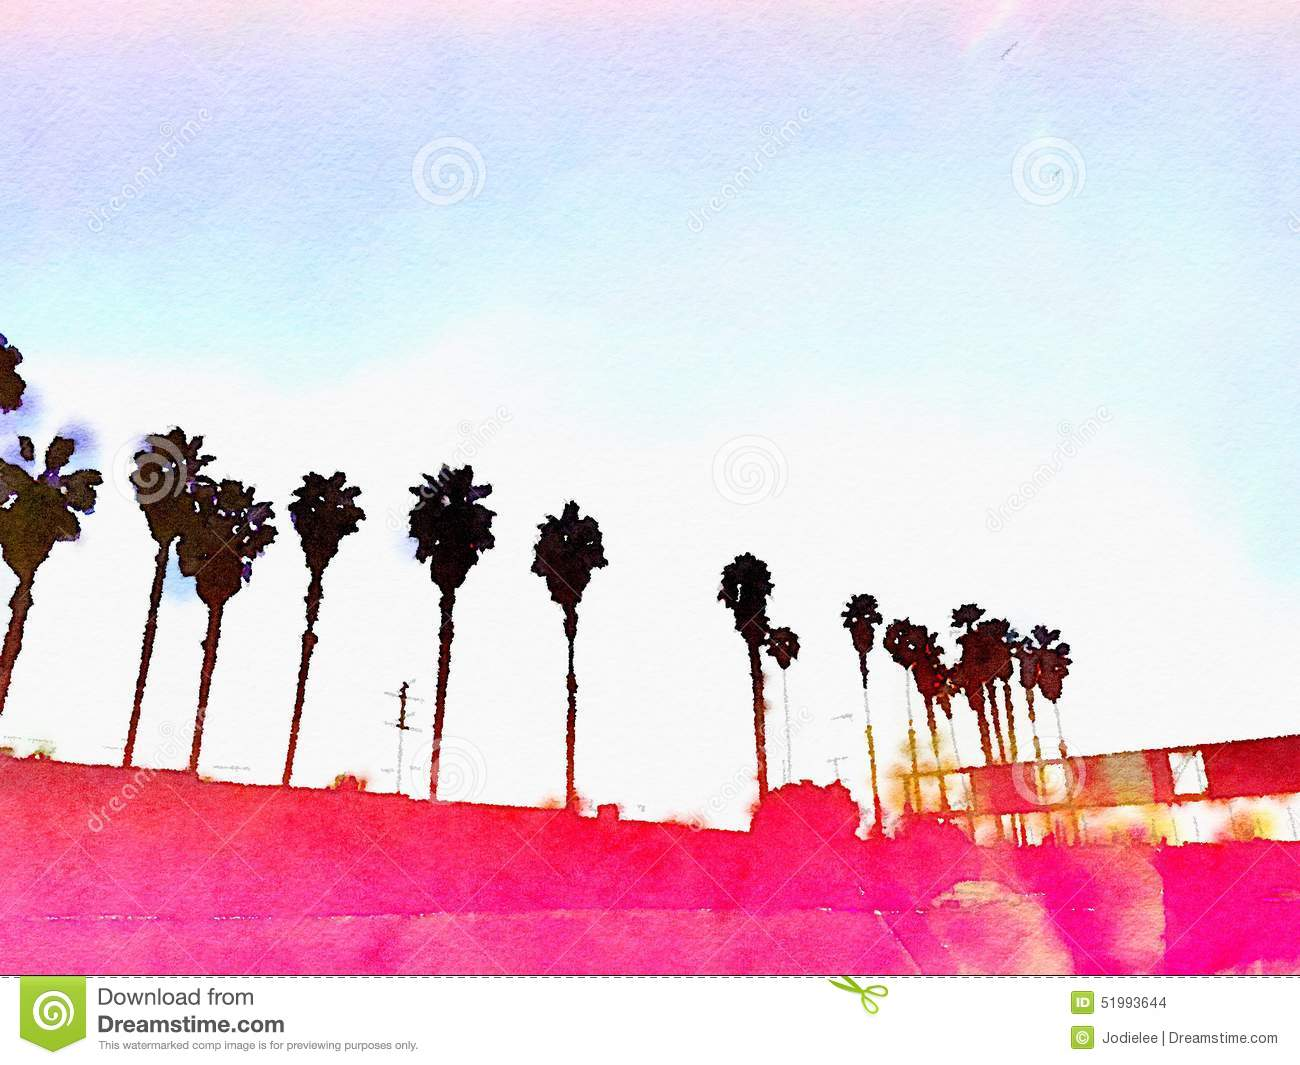 California Palm trees Los Angeles pink graphic watercolor background